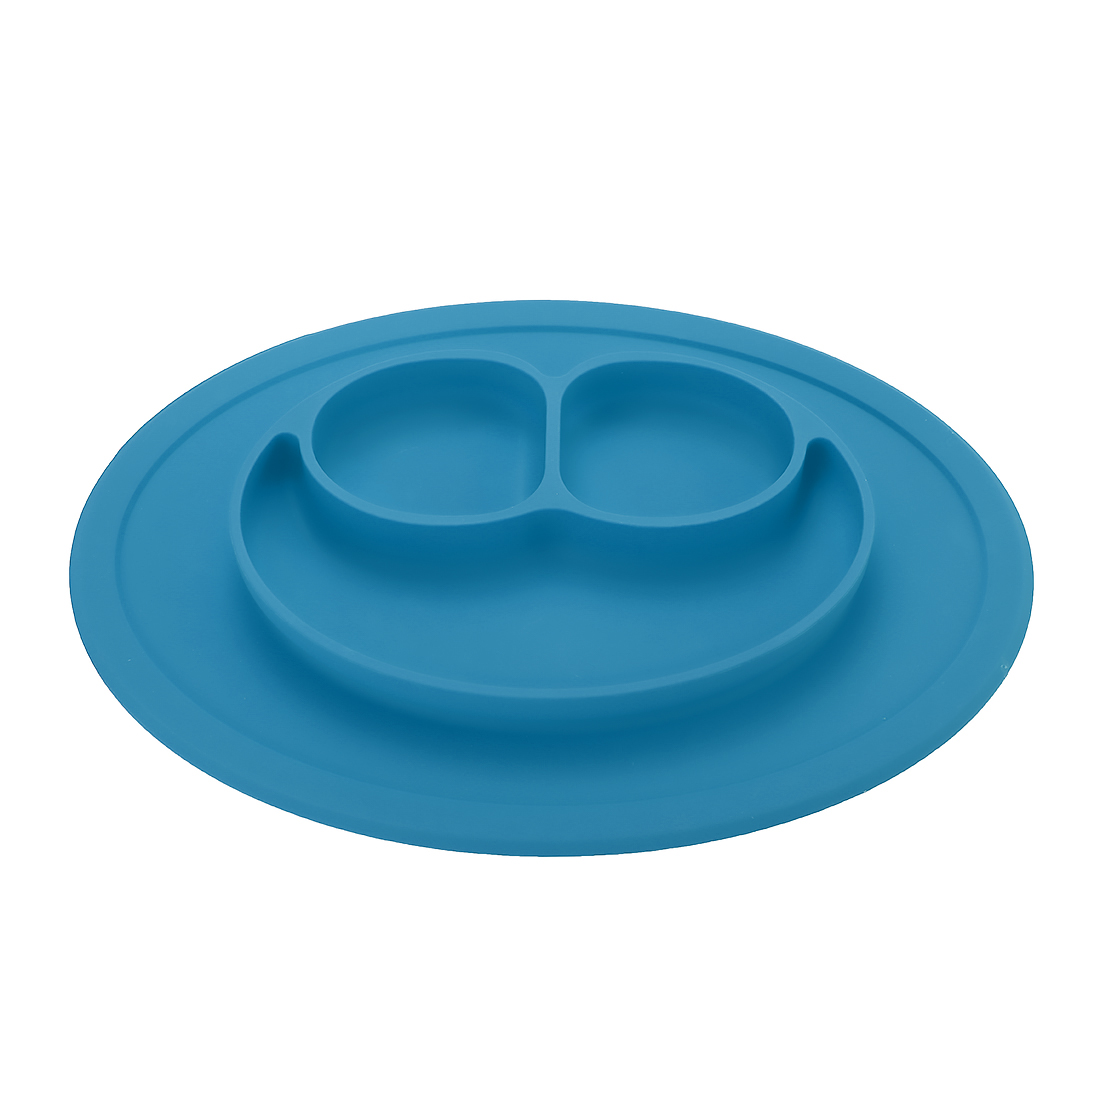 Baby Kids Child Suction Table Food Plate Cute Bowl Silicone Mat - Light Blue